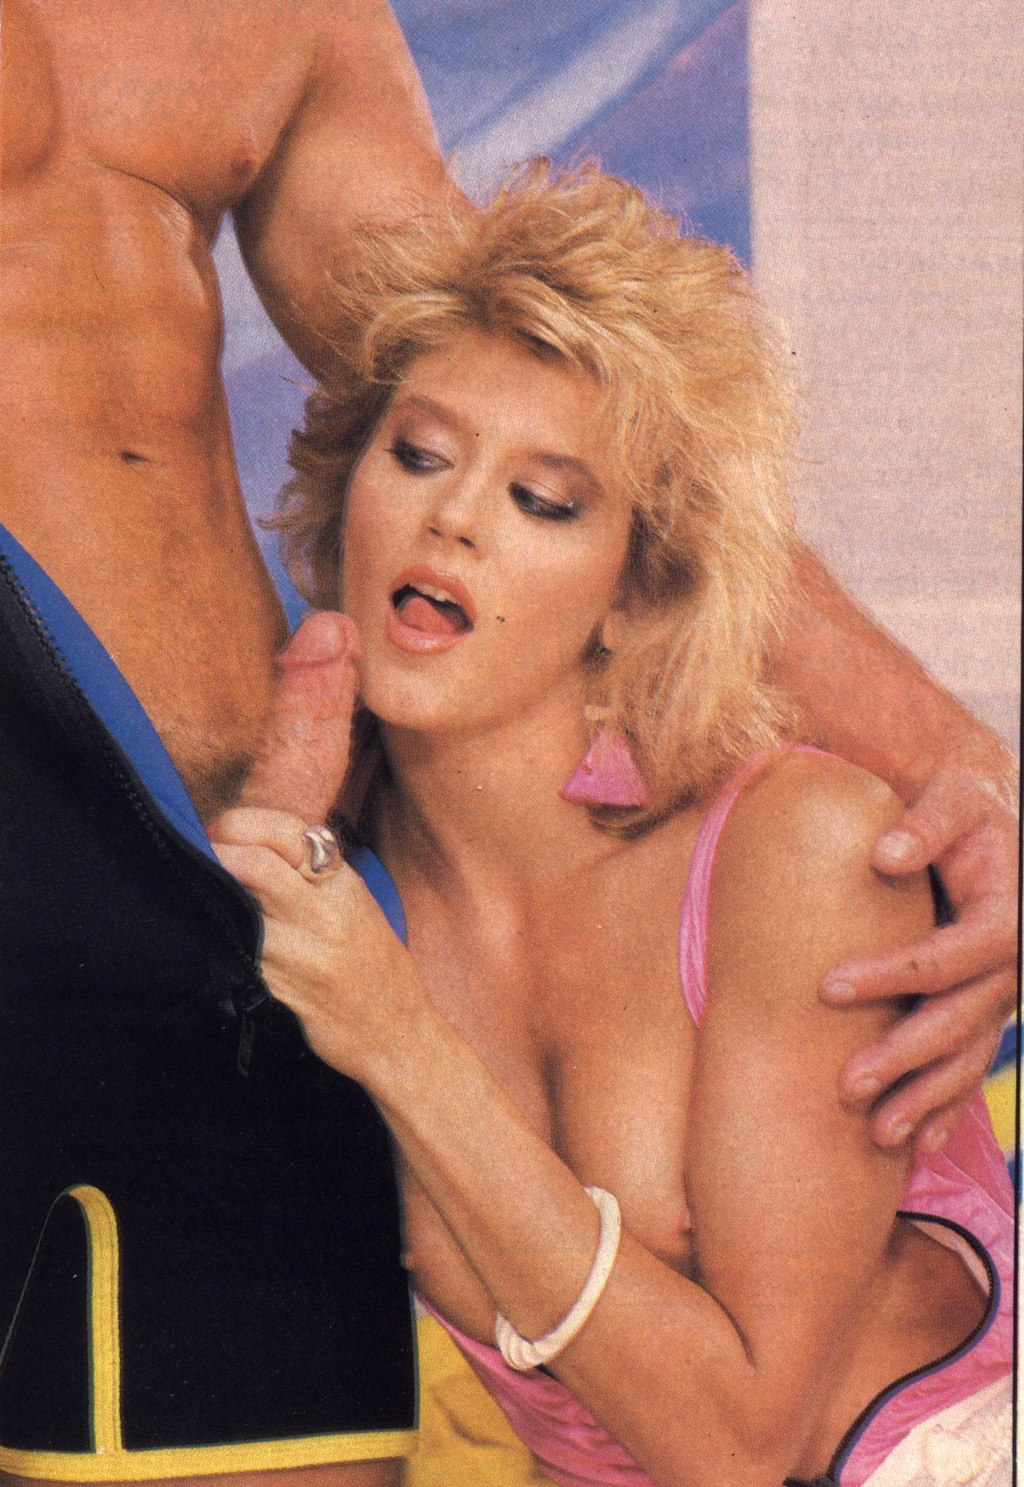 What ginger lynn pornstar right! So